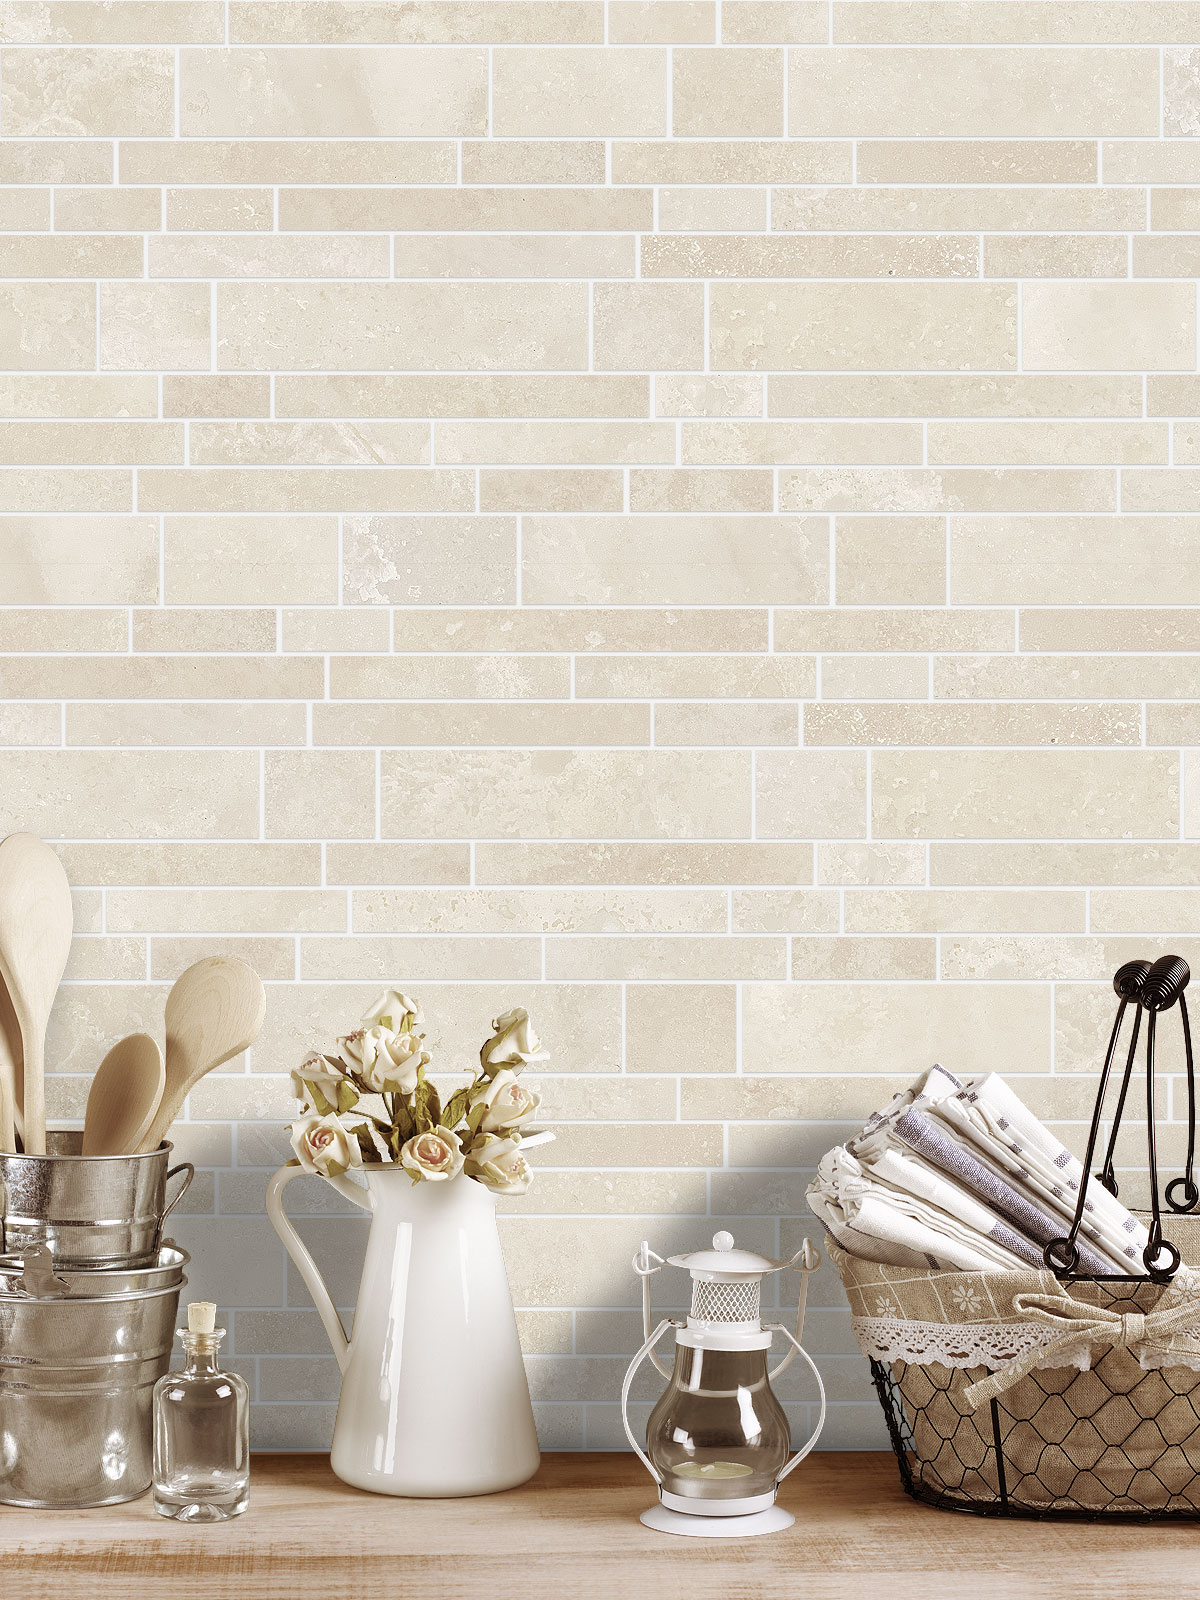 BA1092 Light ivory travertine kitchen backsplash tile from backsplash.com